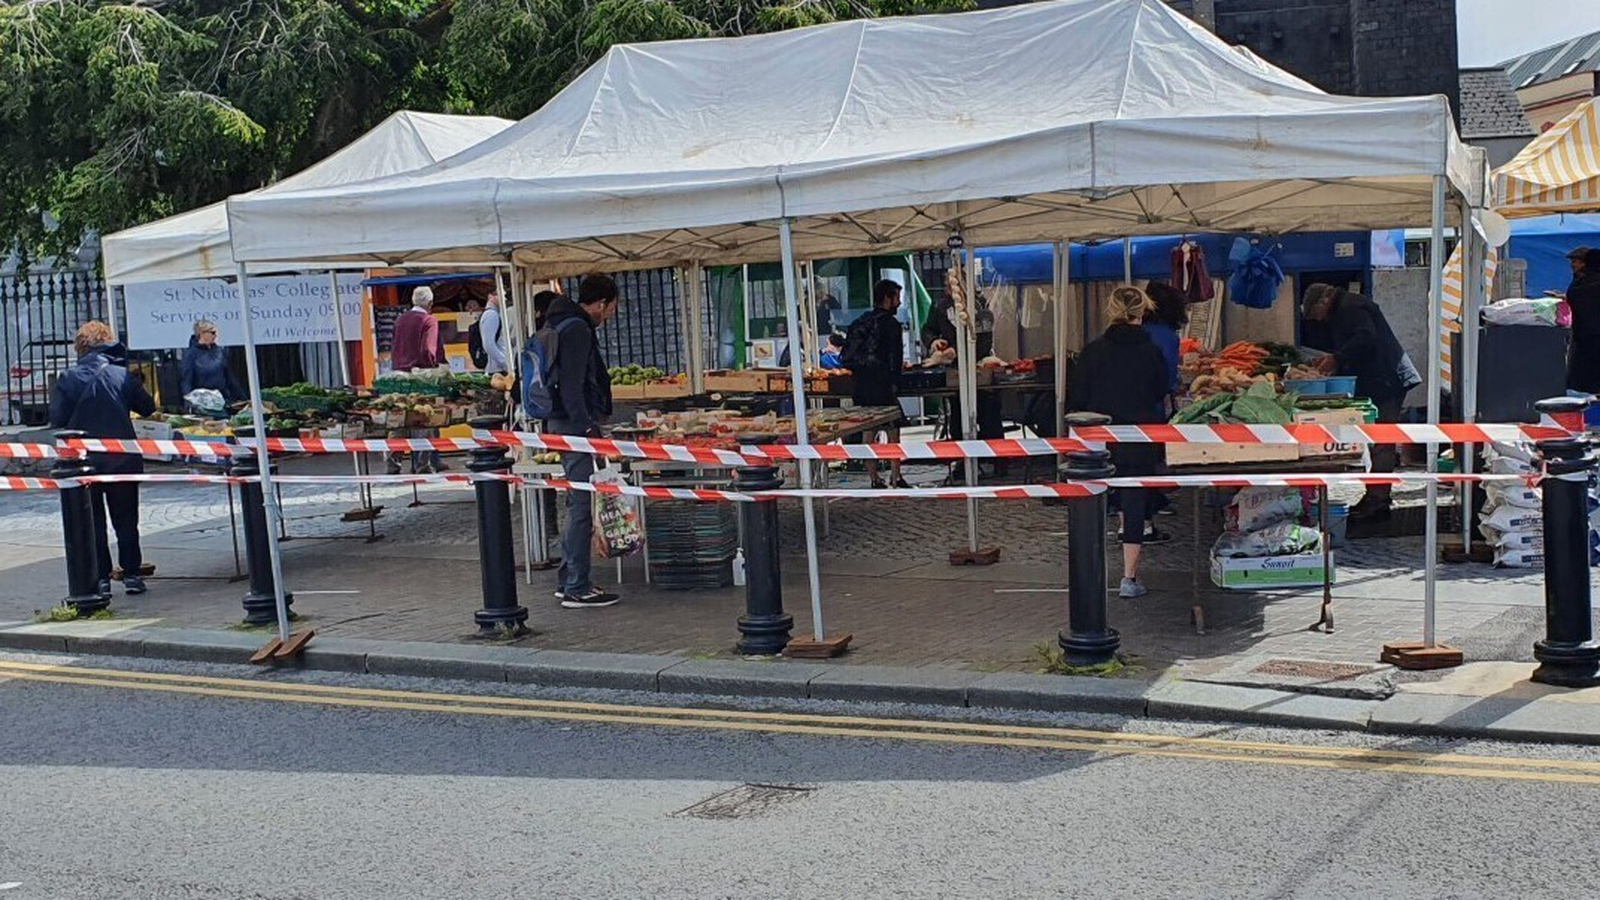 Welcome return to market for Galway traders